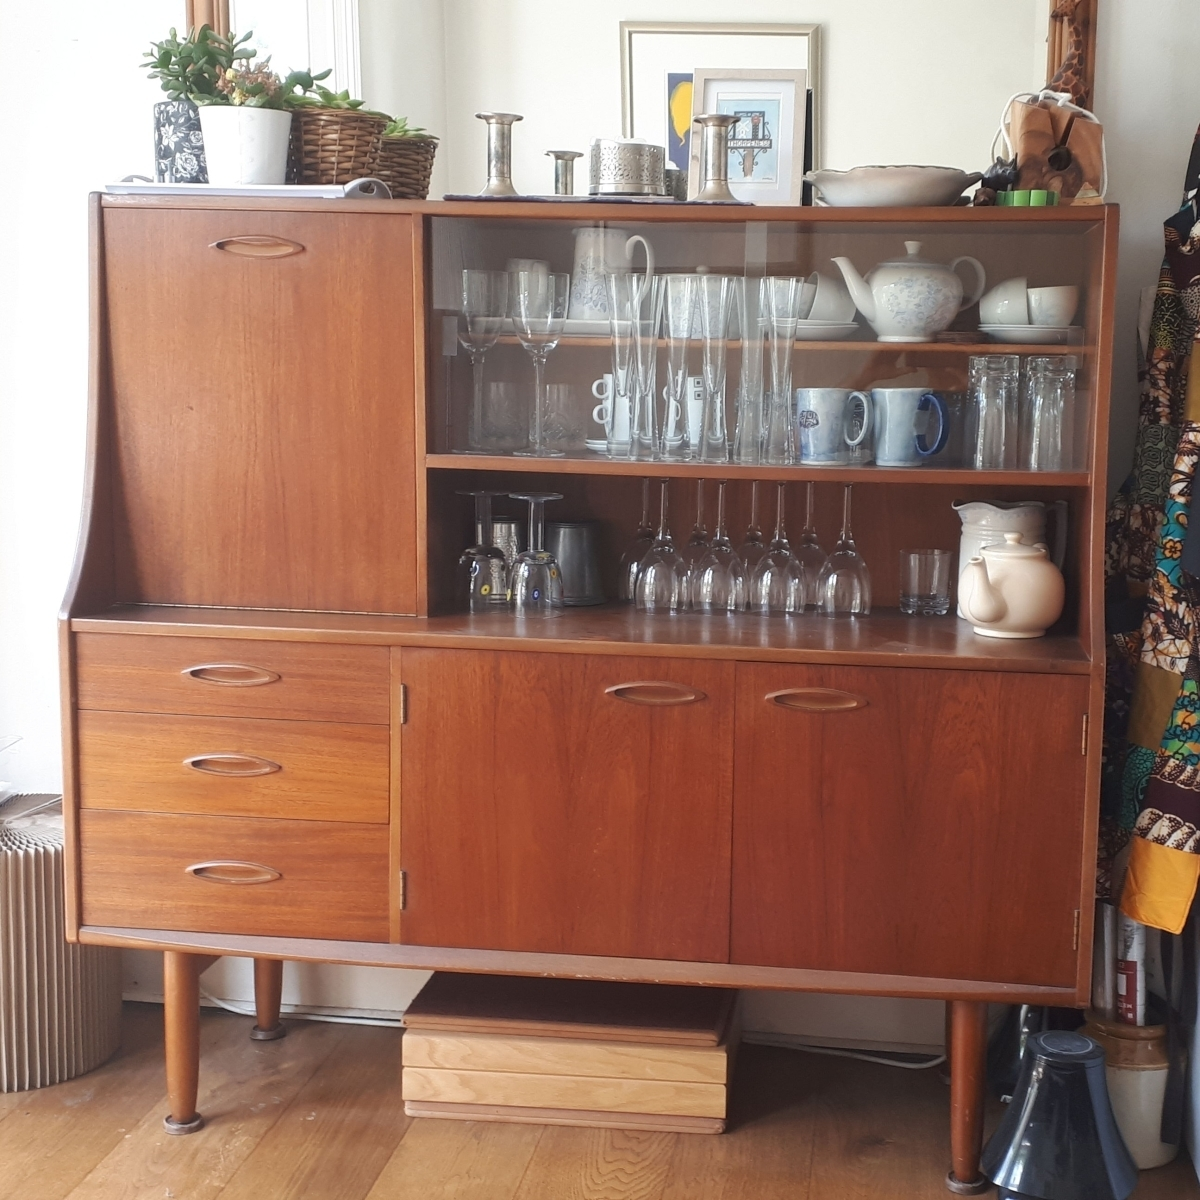 Vintage G Plan Highboard Sideboard For Sale – Harringay Online With Regard To Most Popular Vintage 8 Glass Sideboards (View 19 of 20)